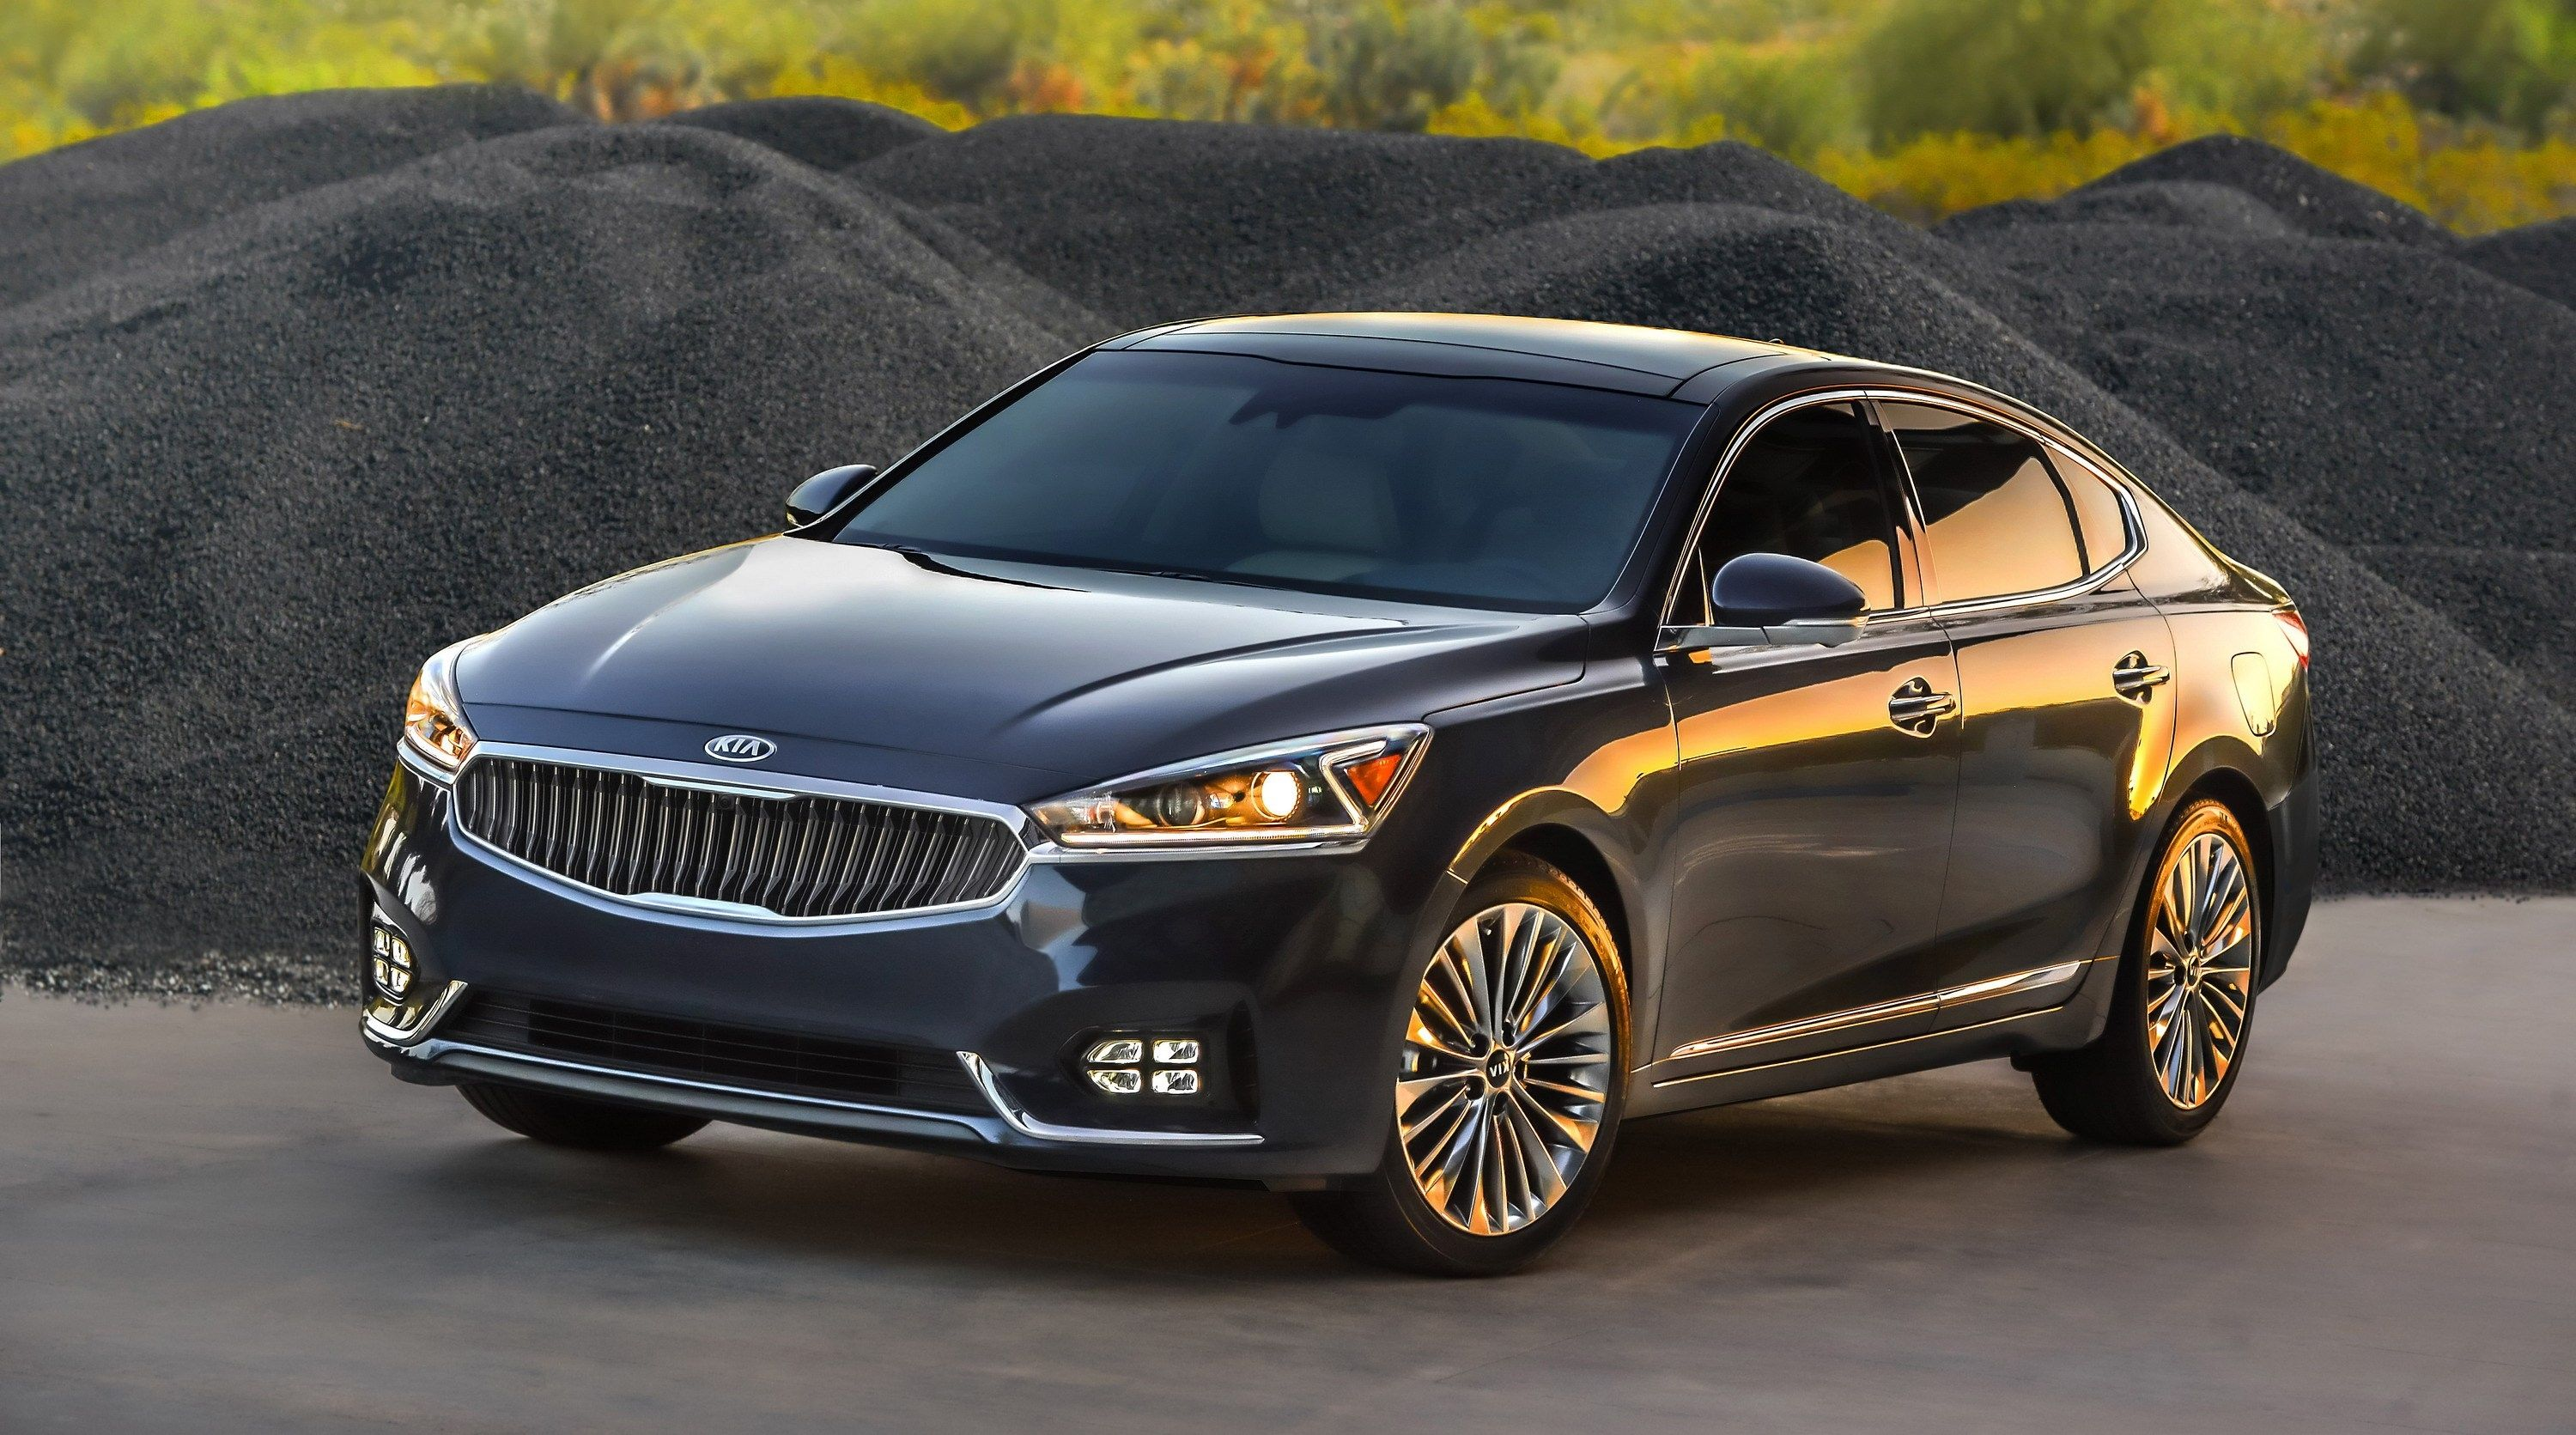 Kia Cadenza Latest News, Reviews, Specifications, Prices